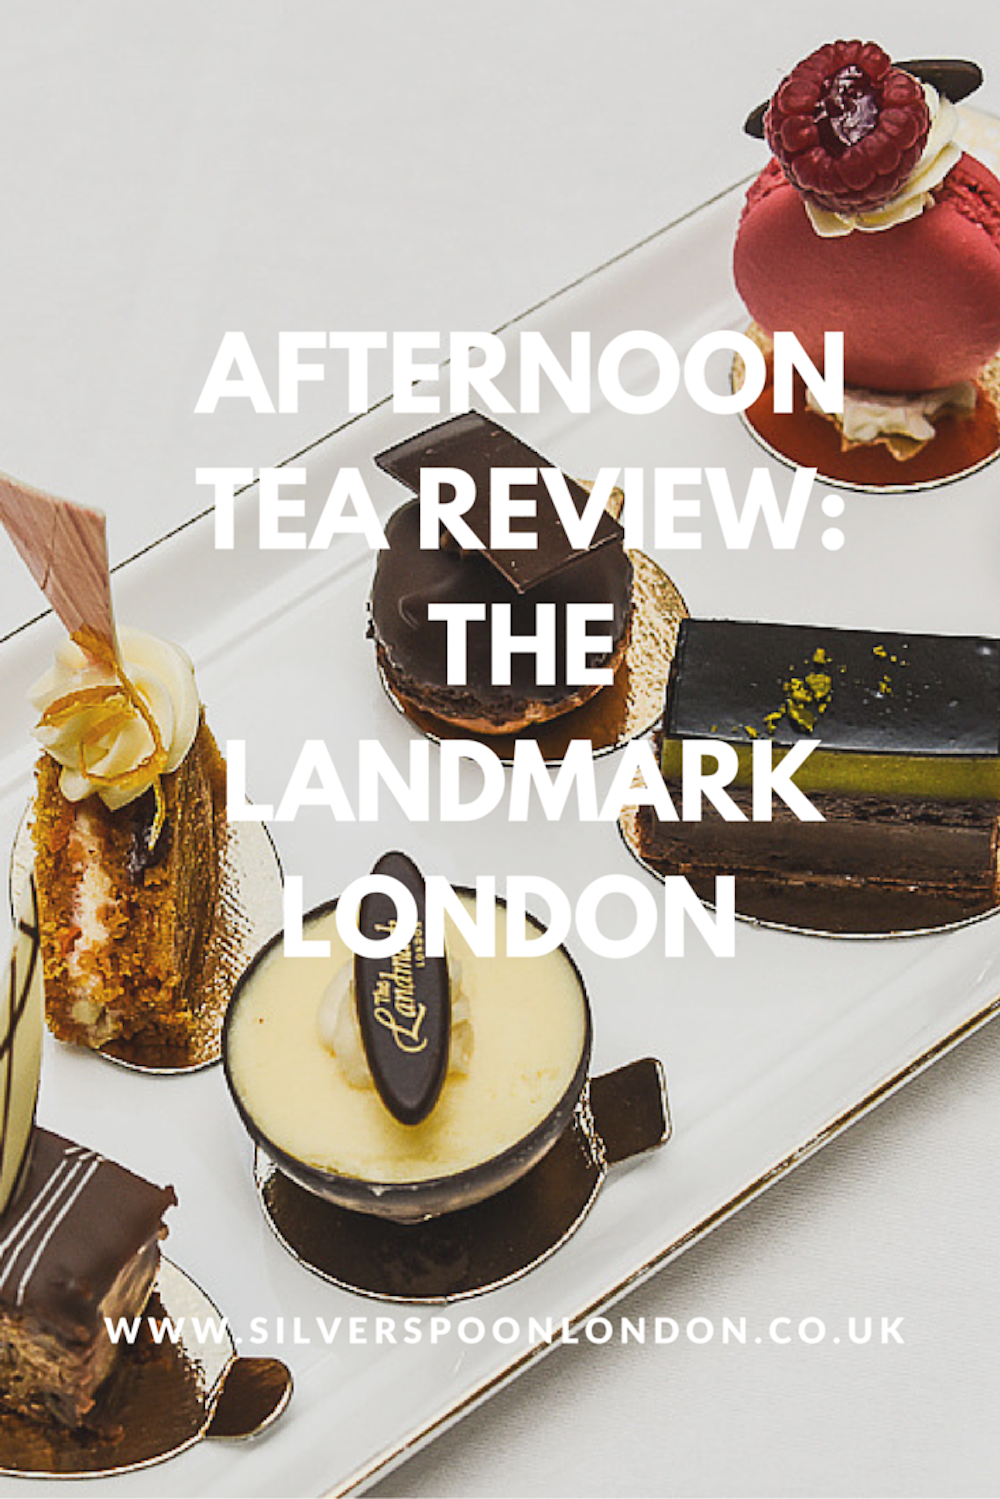 Review of the afternoon tea at The Landmark London